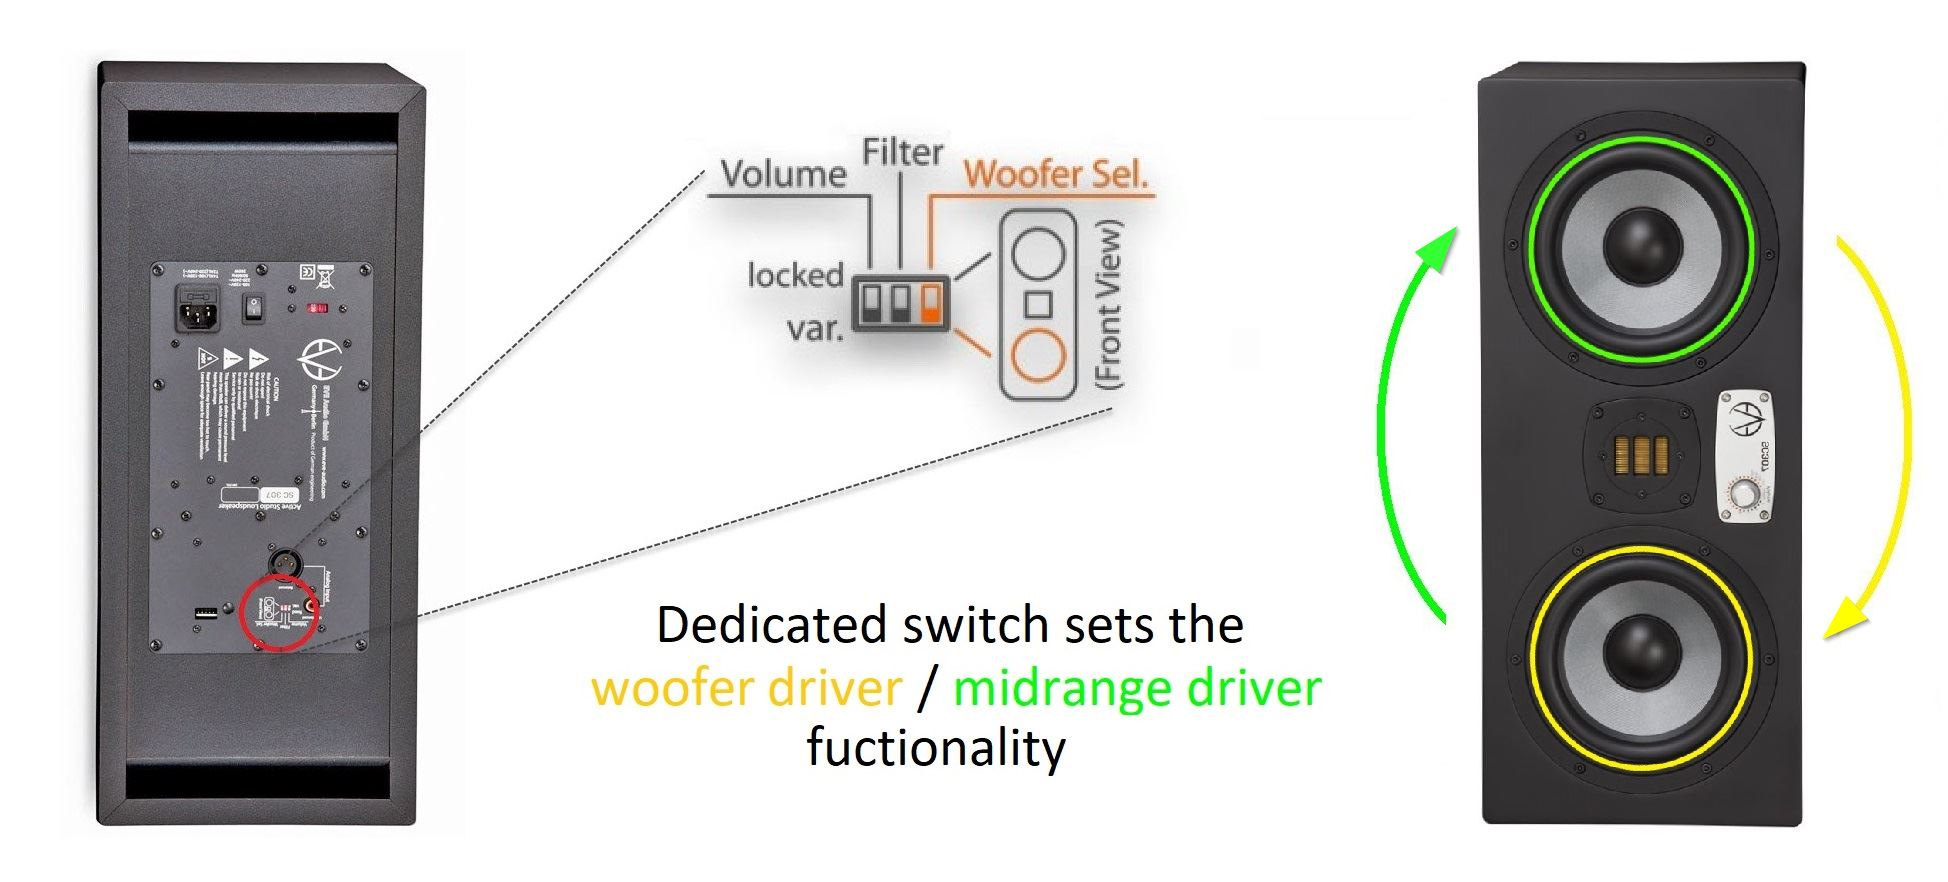 _HDW__Eve_SC307_woofer_select_driver_functionality_switch.jpg